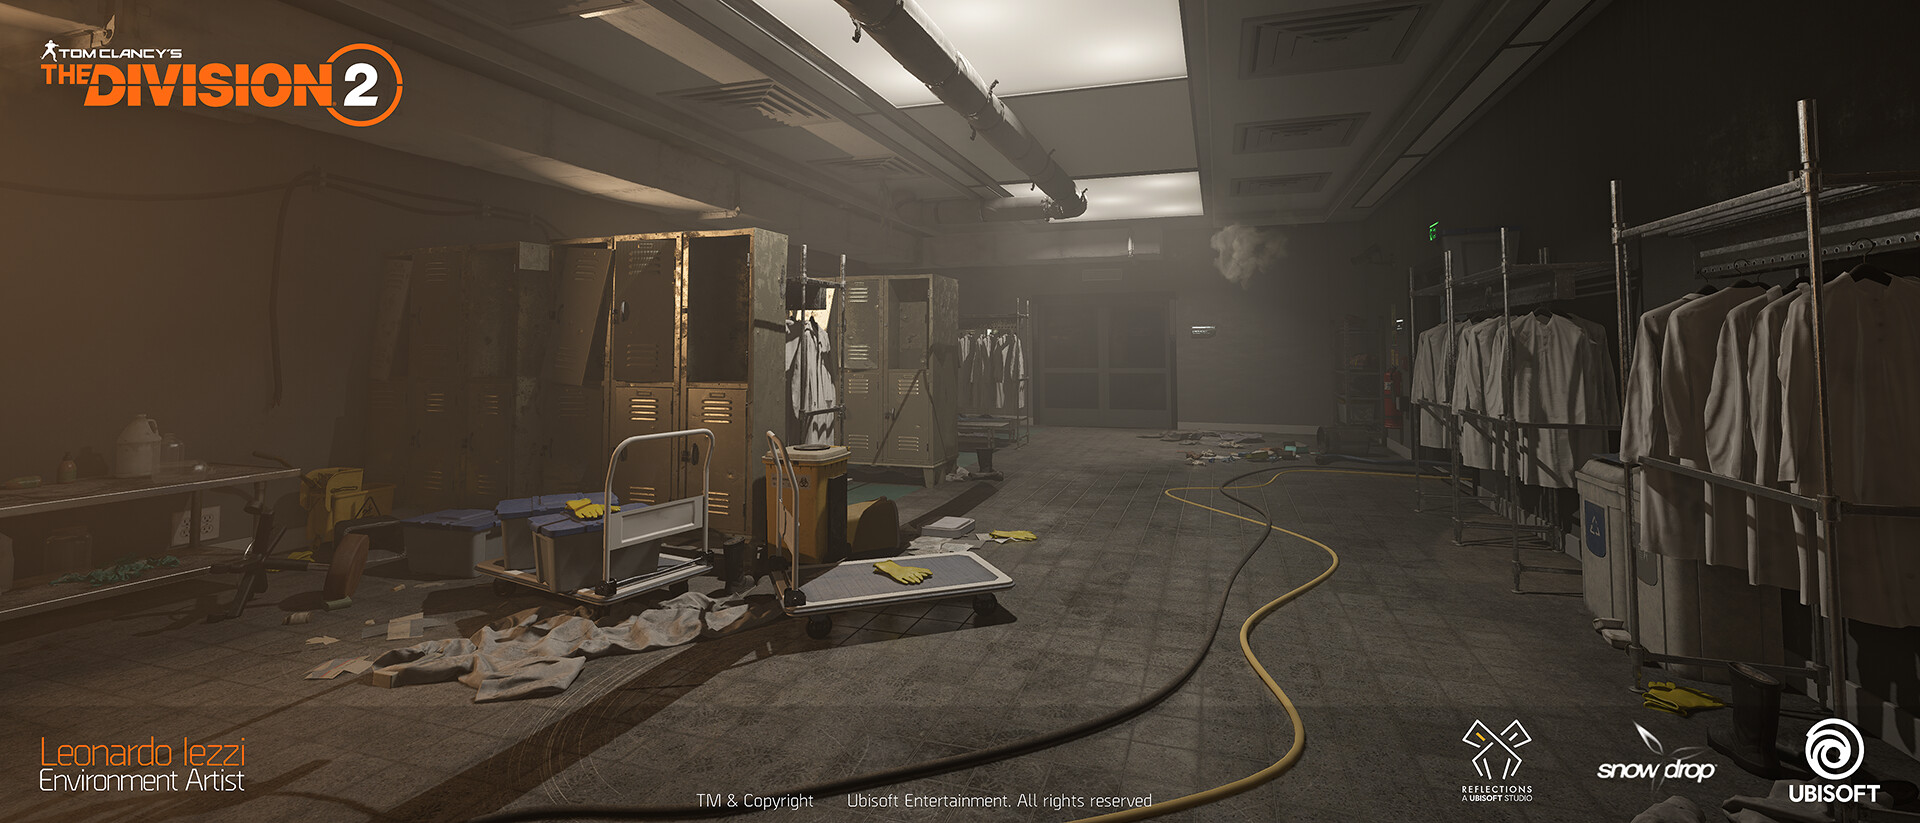 Leonardo iezzi leonardo iezzi the division 2 environment art 09 exit 005 wide